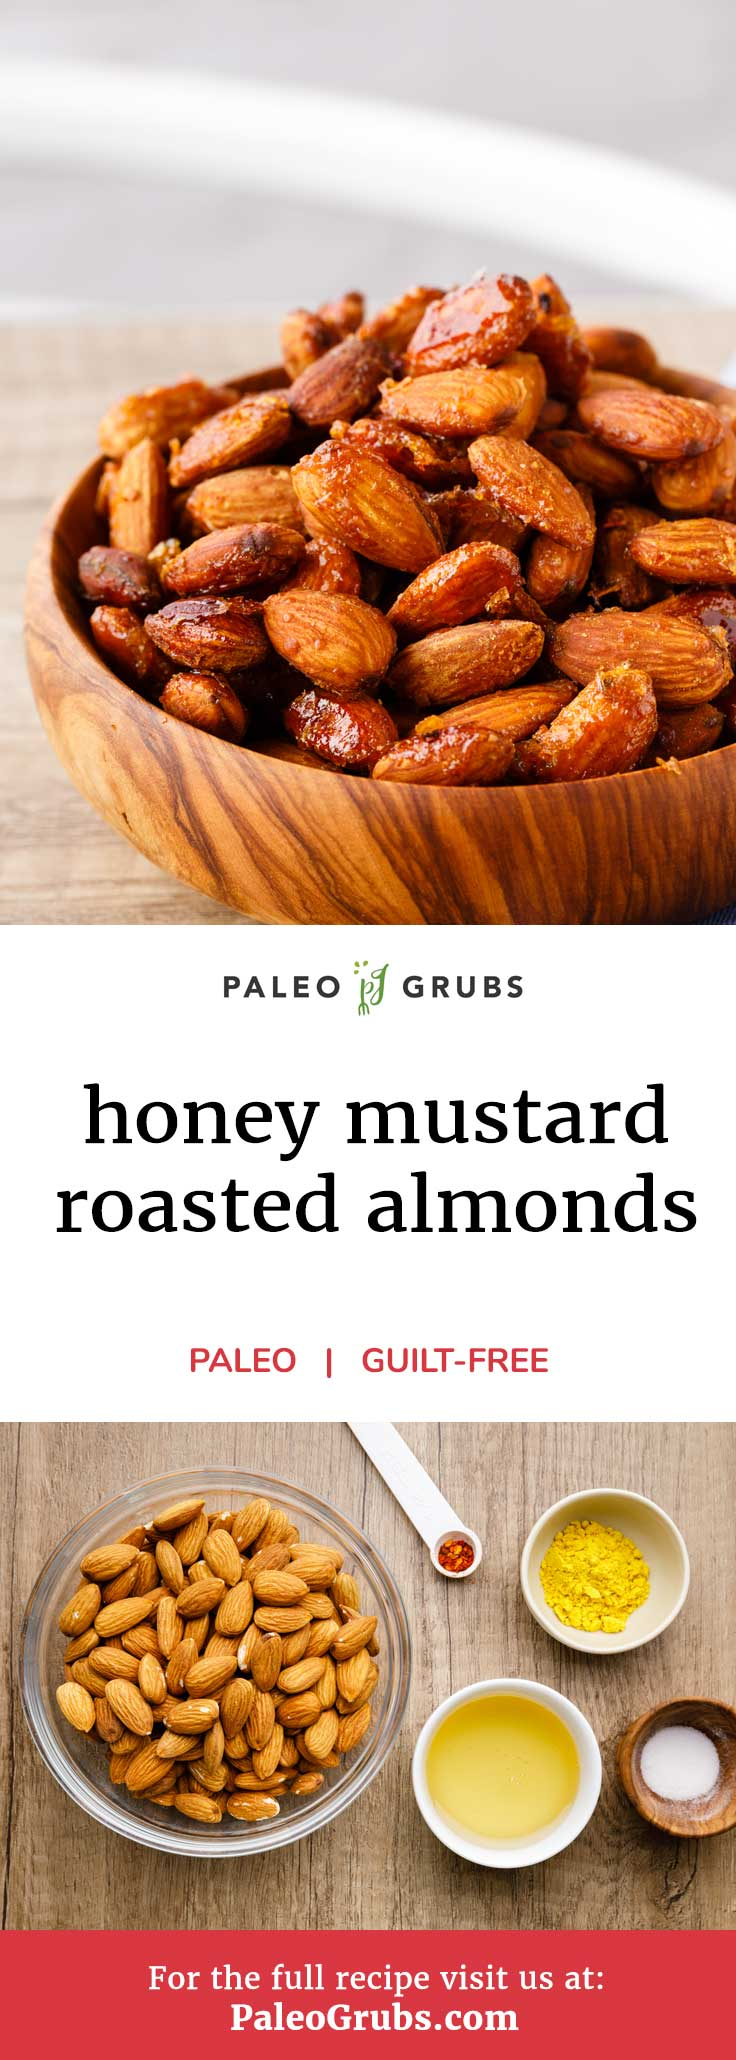 One of my favorite snacks to grab when I'm in a hurry and pressed for time is a handful of these homemade honey mustard roasted almonds! YUM.